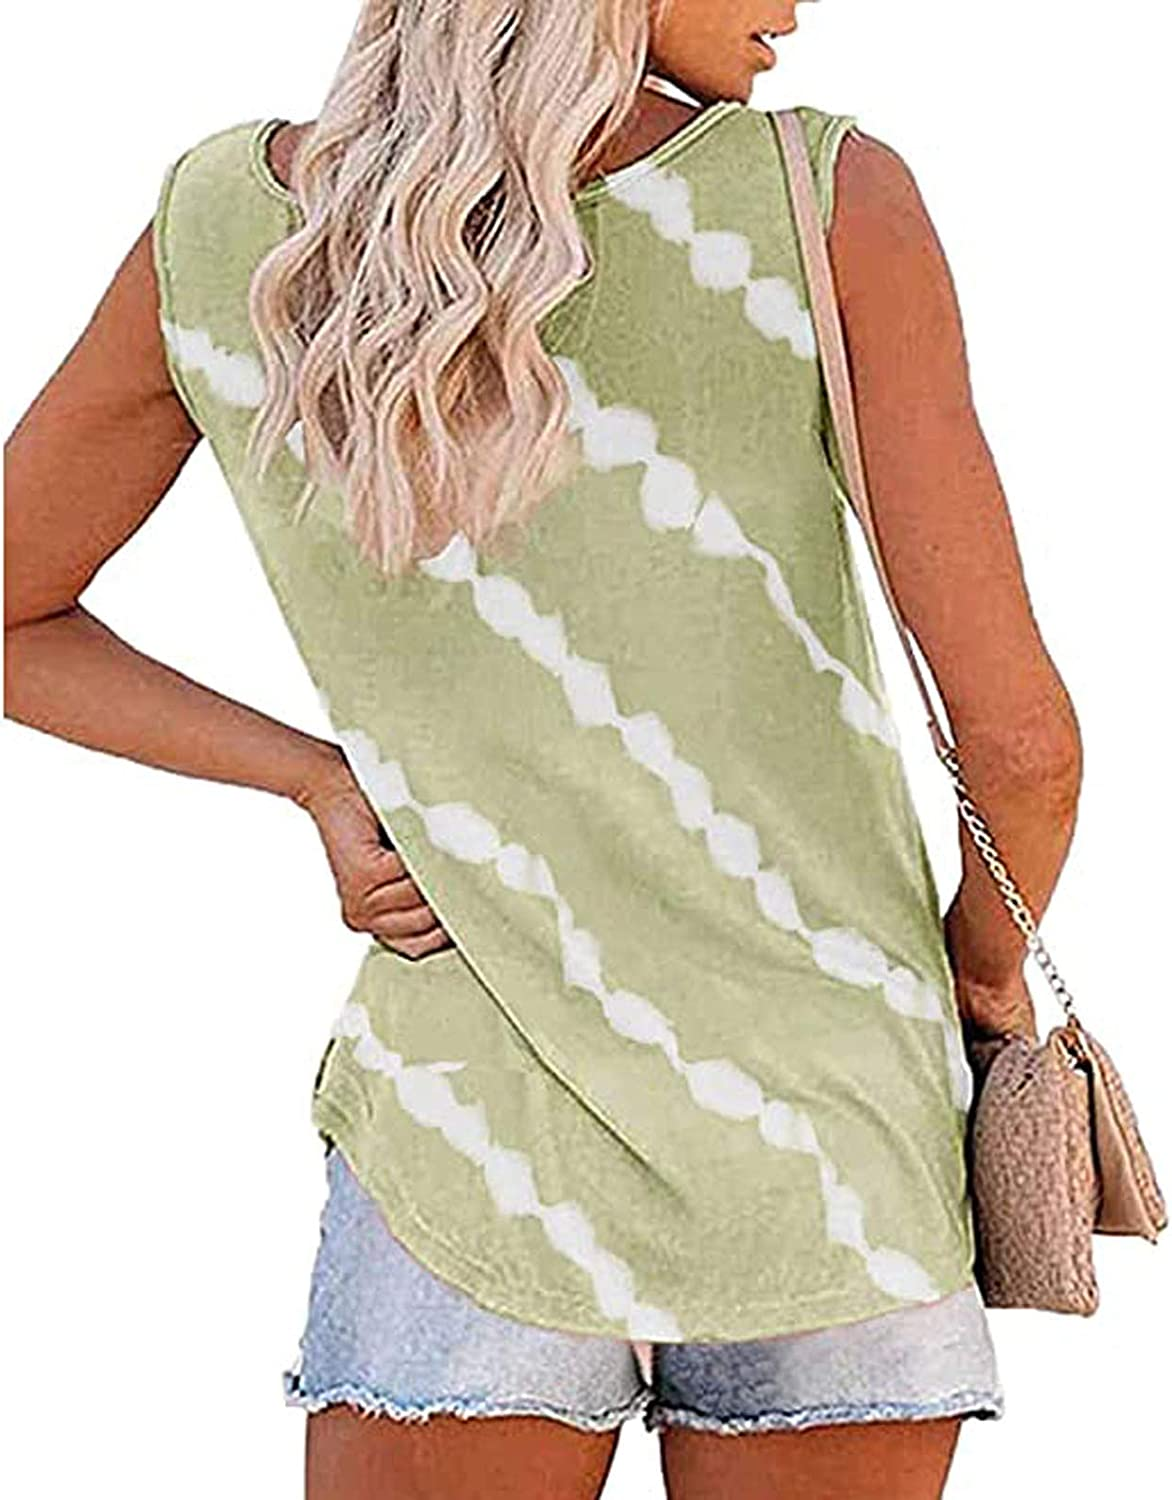 AOKASII Plus Size Tank Tops for Women,V Neck Tank Tops Casual Shirts Sleeveless Tunic Tops Blouse Summer Vests